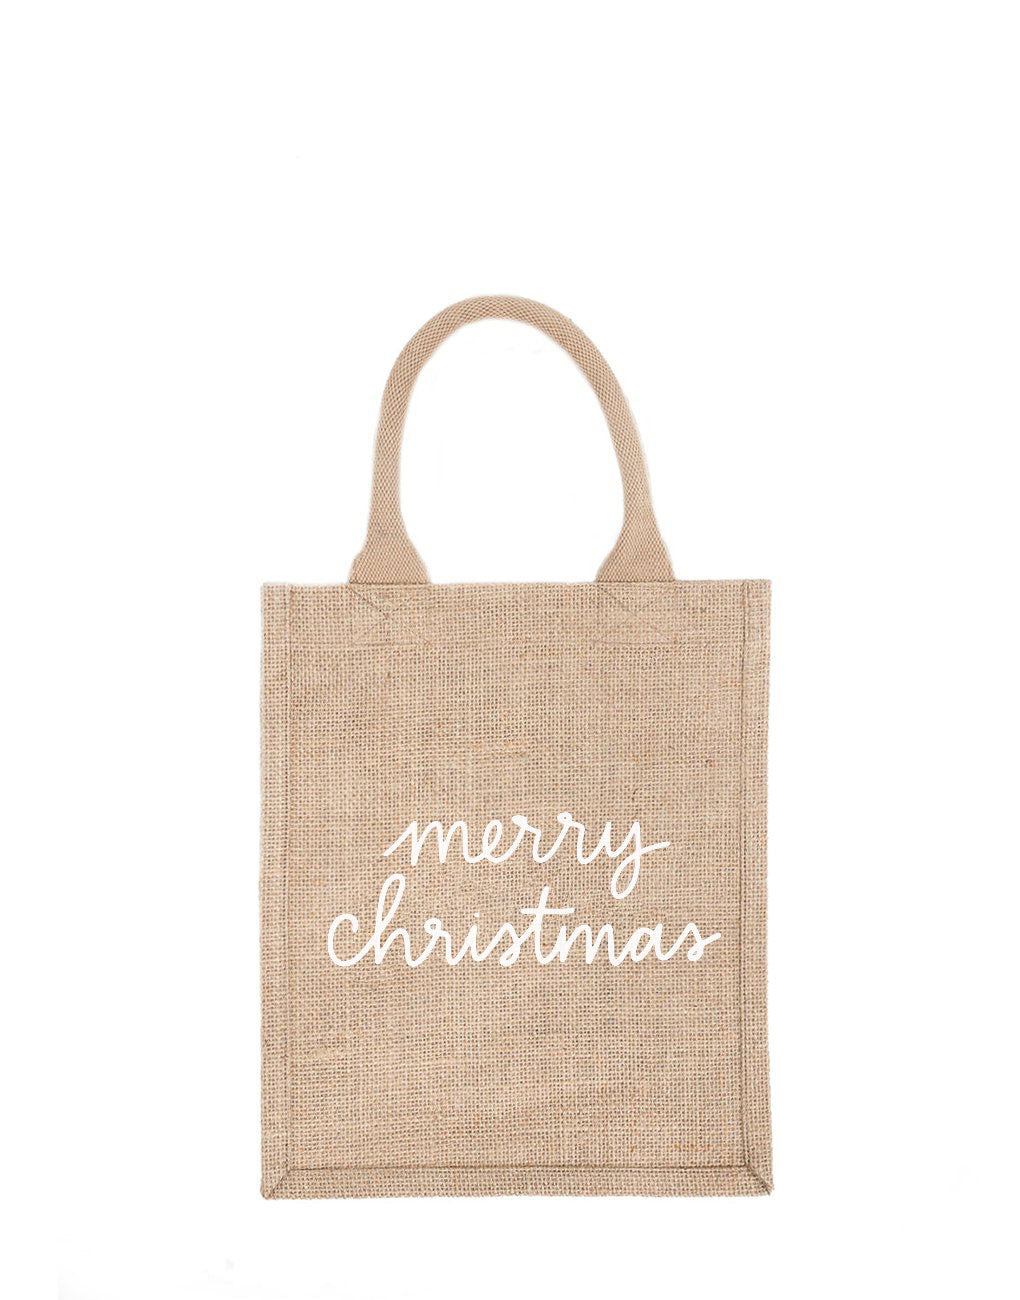 Medium Merry Christmas Reusable Gift Tote In White Font | The Little Market